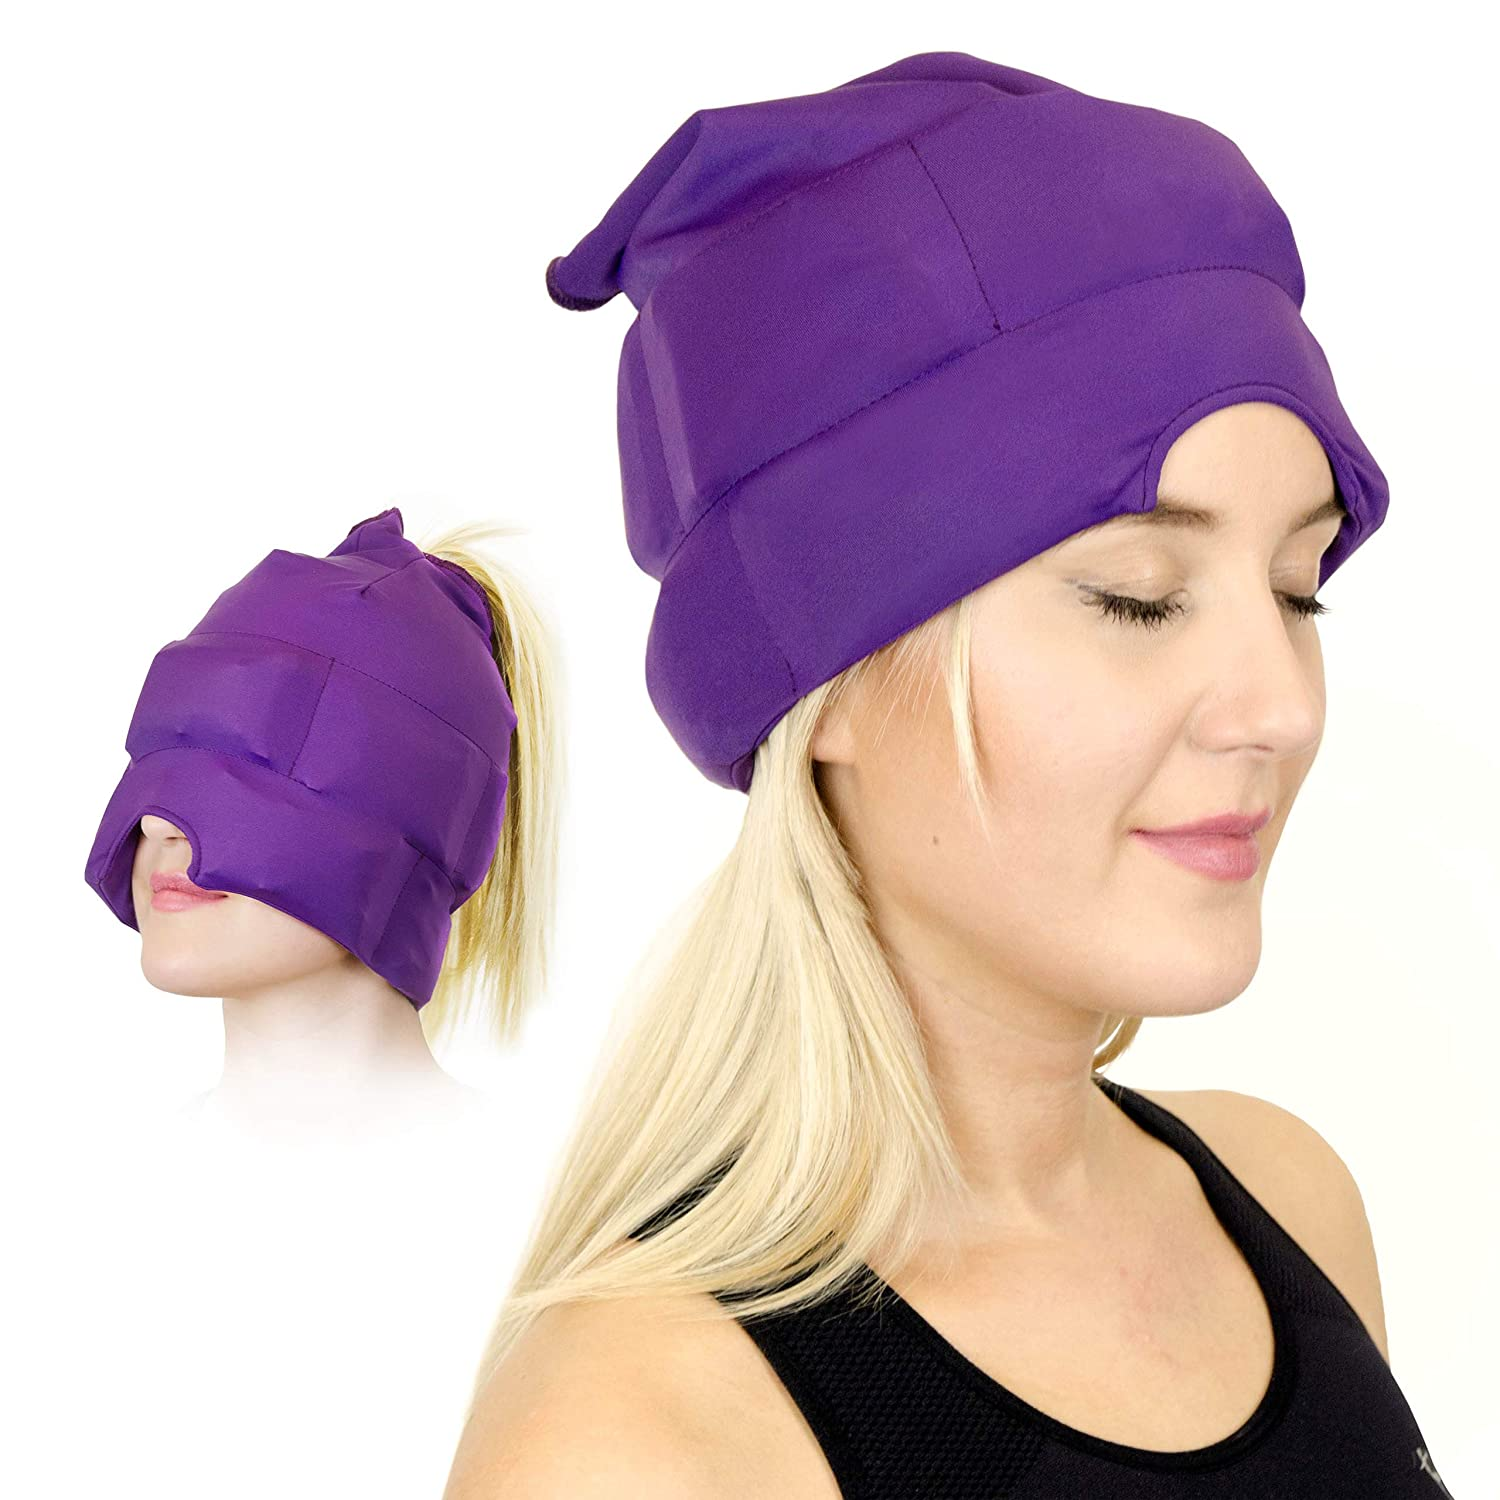 Headache and Migraine Relief Cap - A Headache Ice Mask or Hat used for Migraines and Tension Headache Relief. Stretchy, comfortable, Dark and Cool (by Magic Gel)